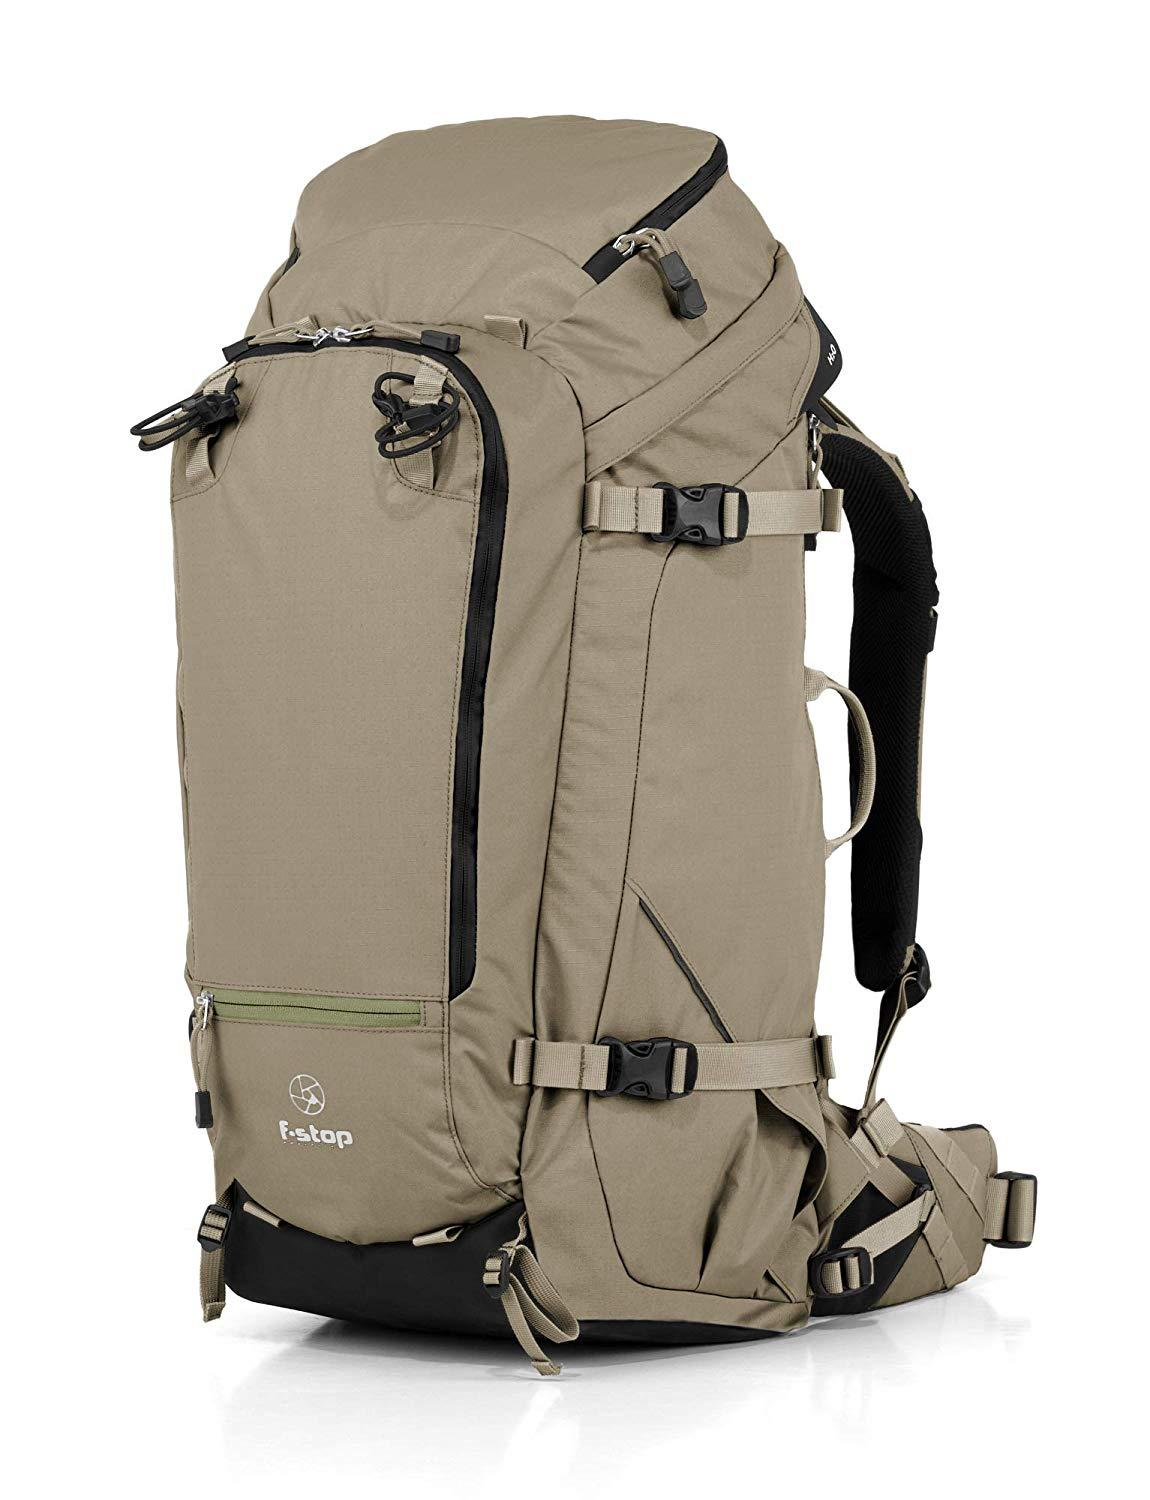 top travel accessories backpack 1 image